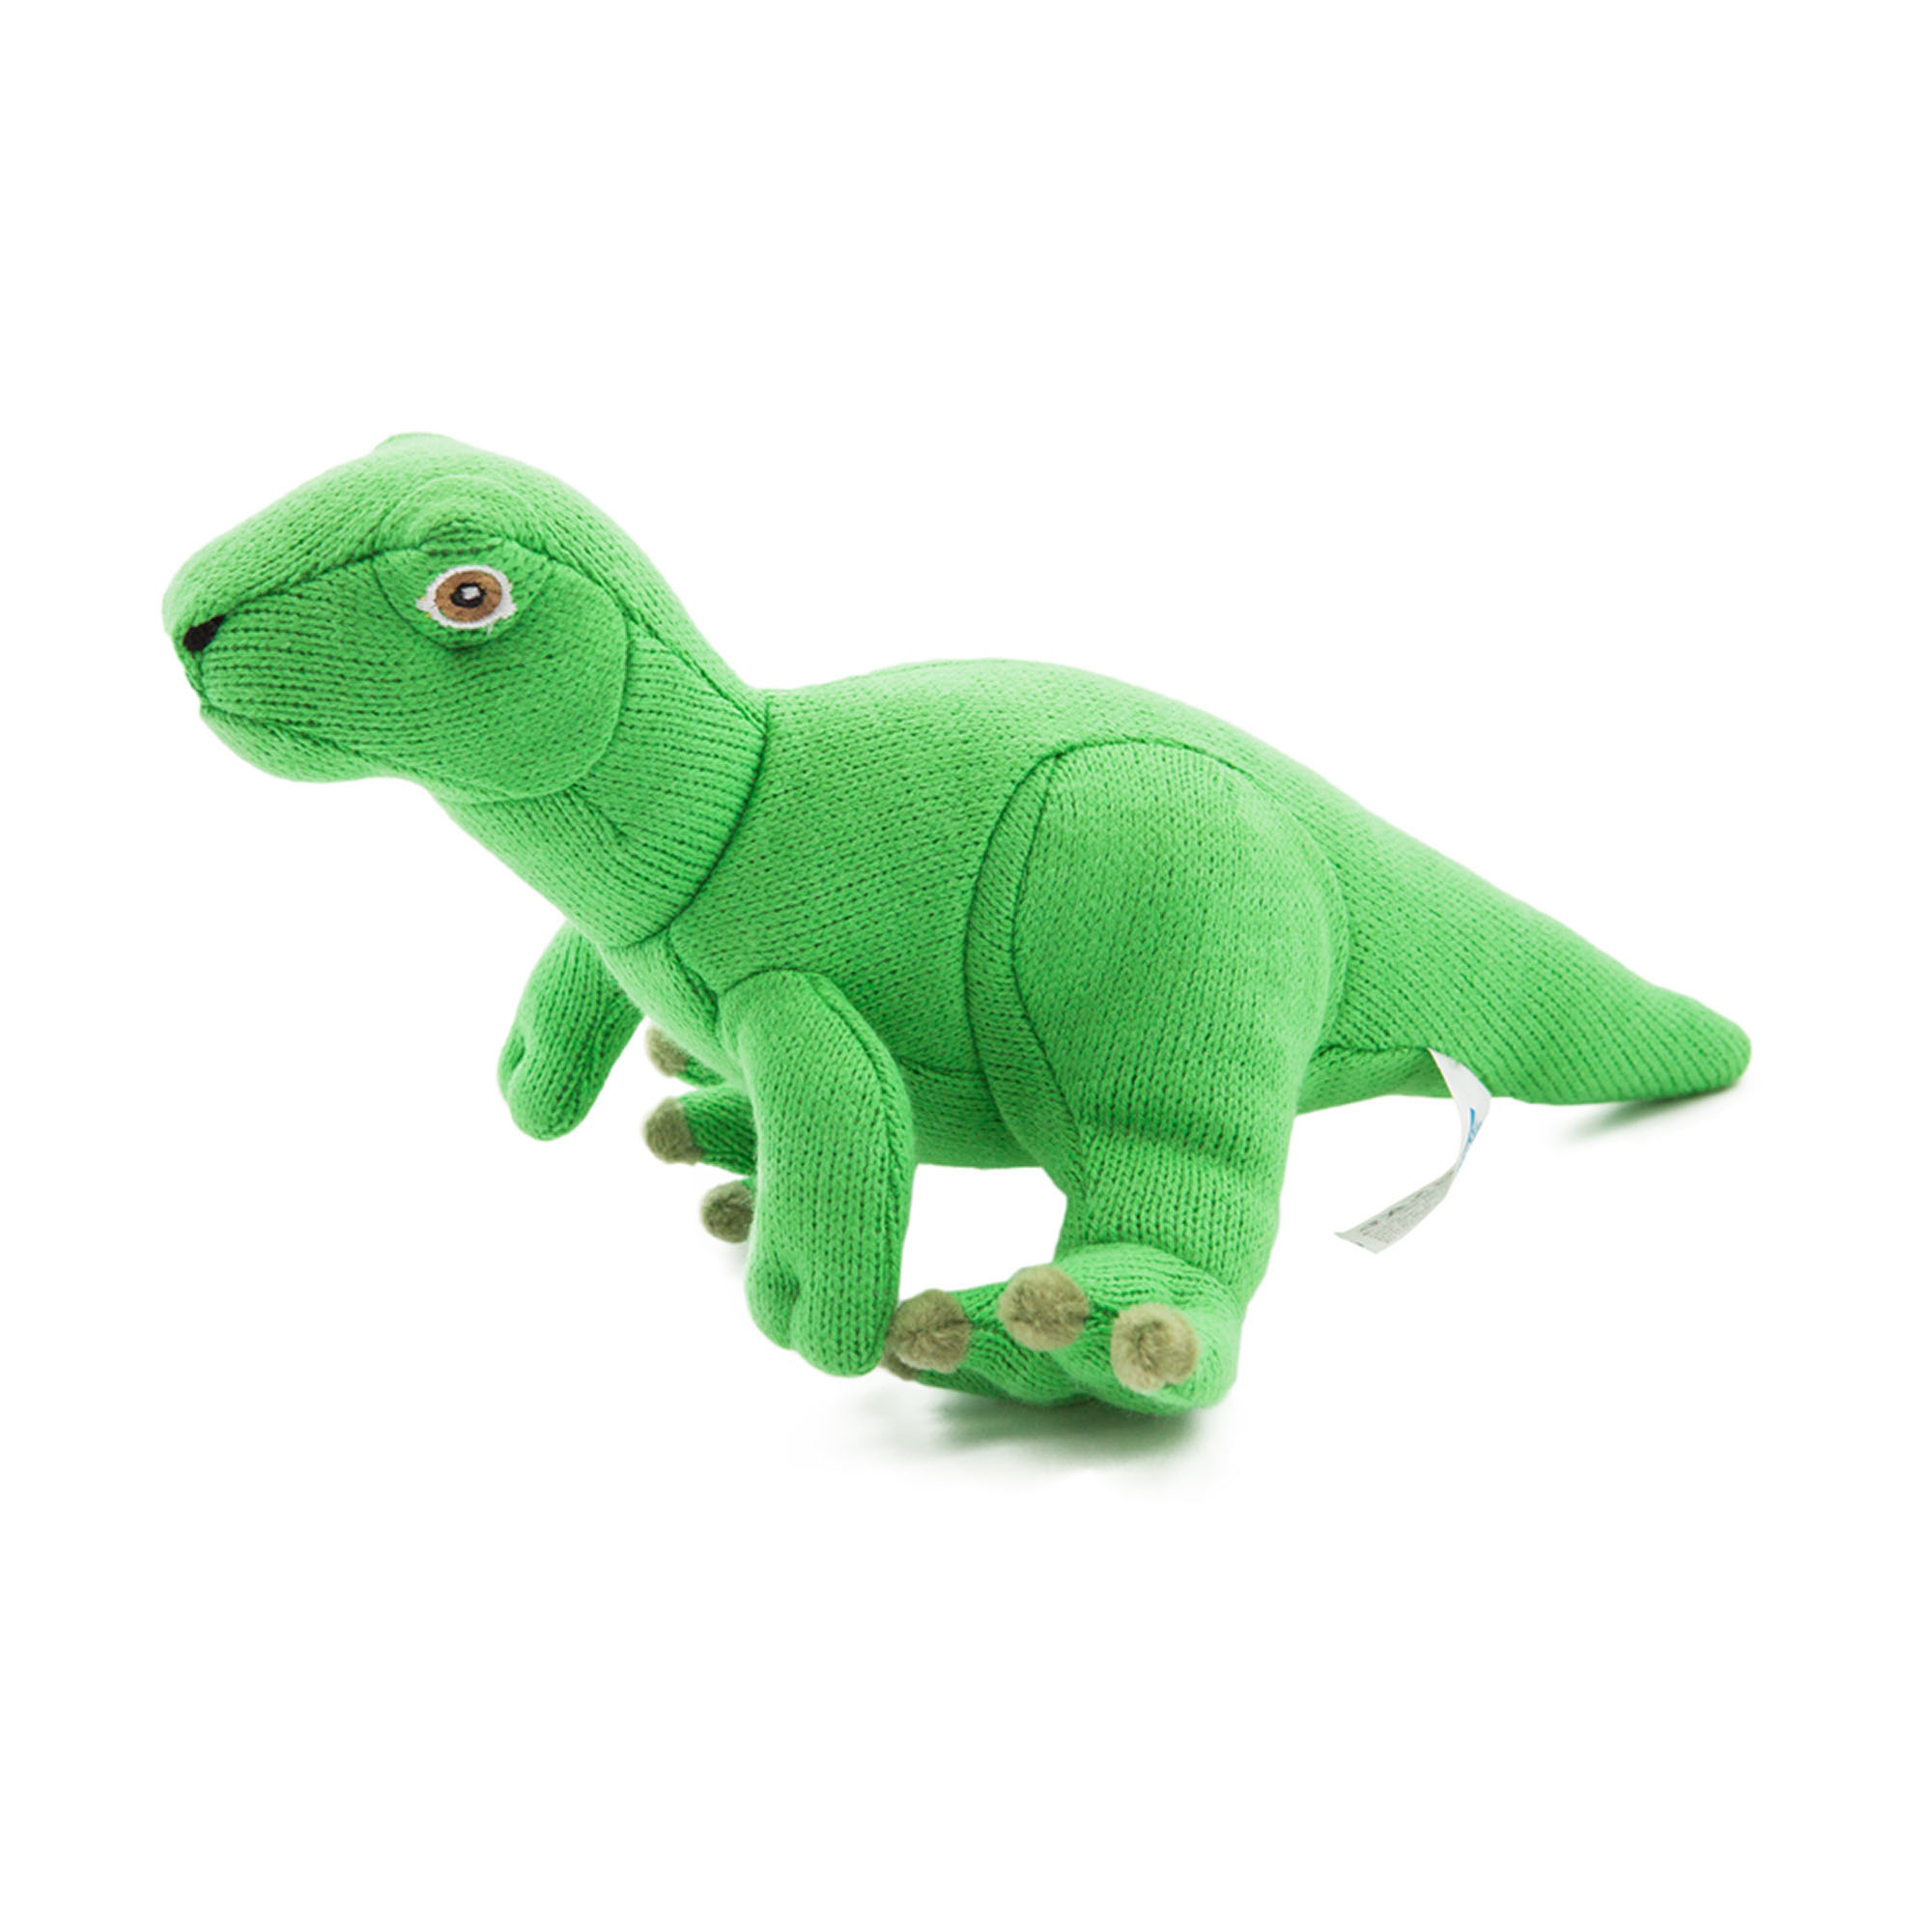 <p>A re-designed cuddly version of Atlas Copco's very own dinosaur Atlascopcosaurus Loadsi, discovered in 1984. This new version of our favorite soft toy is knitted in vibrant bright green color and will appeal to kids and anyone who likes cute and cuddly. To ensure maximum safety for children, the materials and manufacture of this item are tested and approved under according to EU Toy Safety Directive*. *Ref: EN71 1-3 och EN71 9</p>